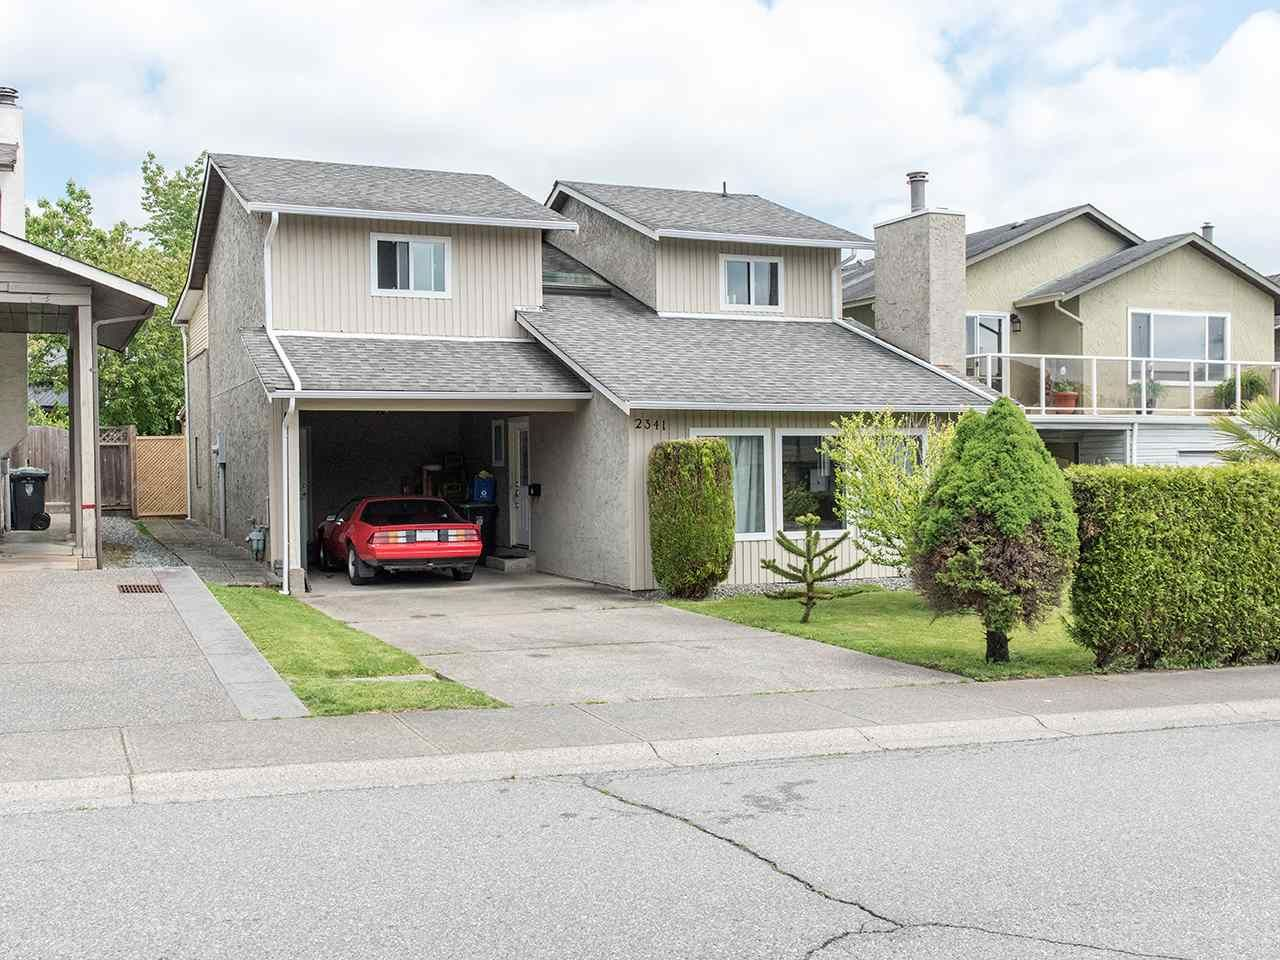 """Main Photo: 2341 WAKEFIELD Drive in Langley: Willoughby Heights House for sale in """"Willoughby Heights"""" : MLS®# R2371963"""